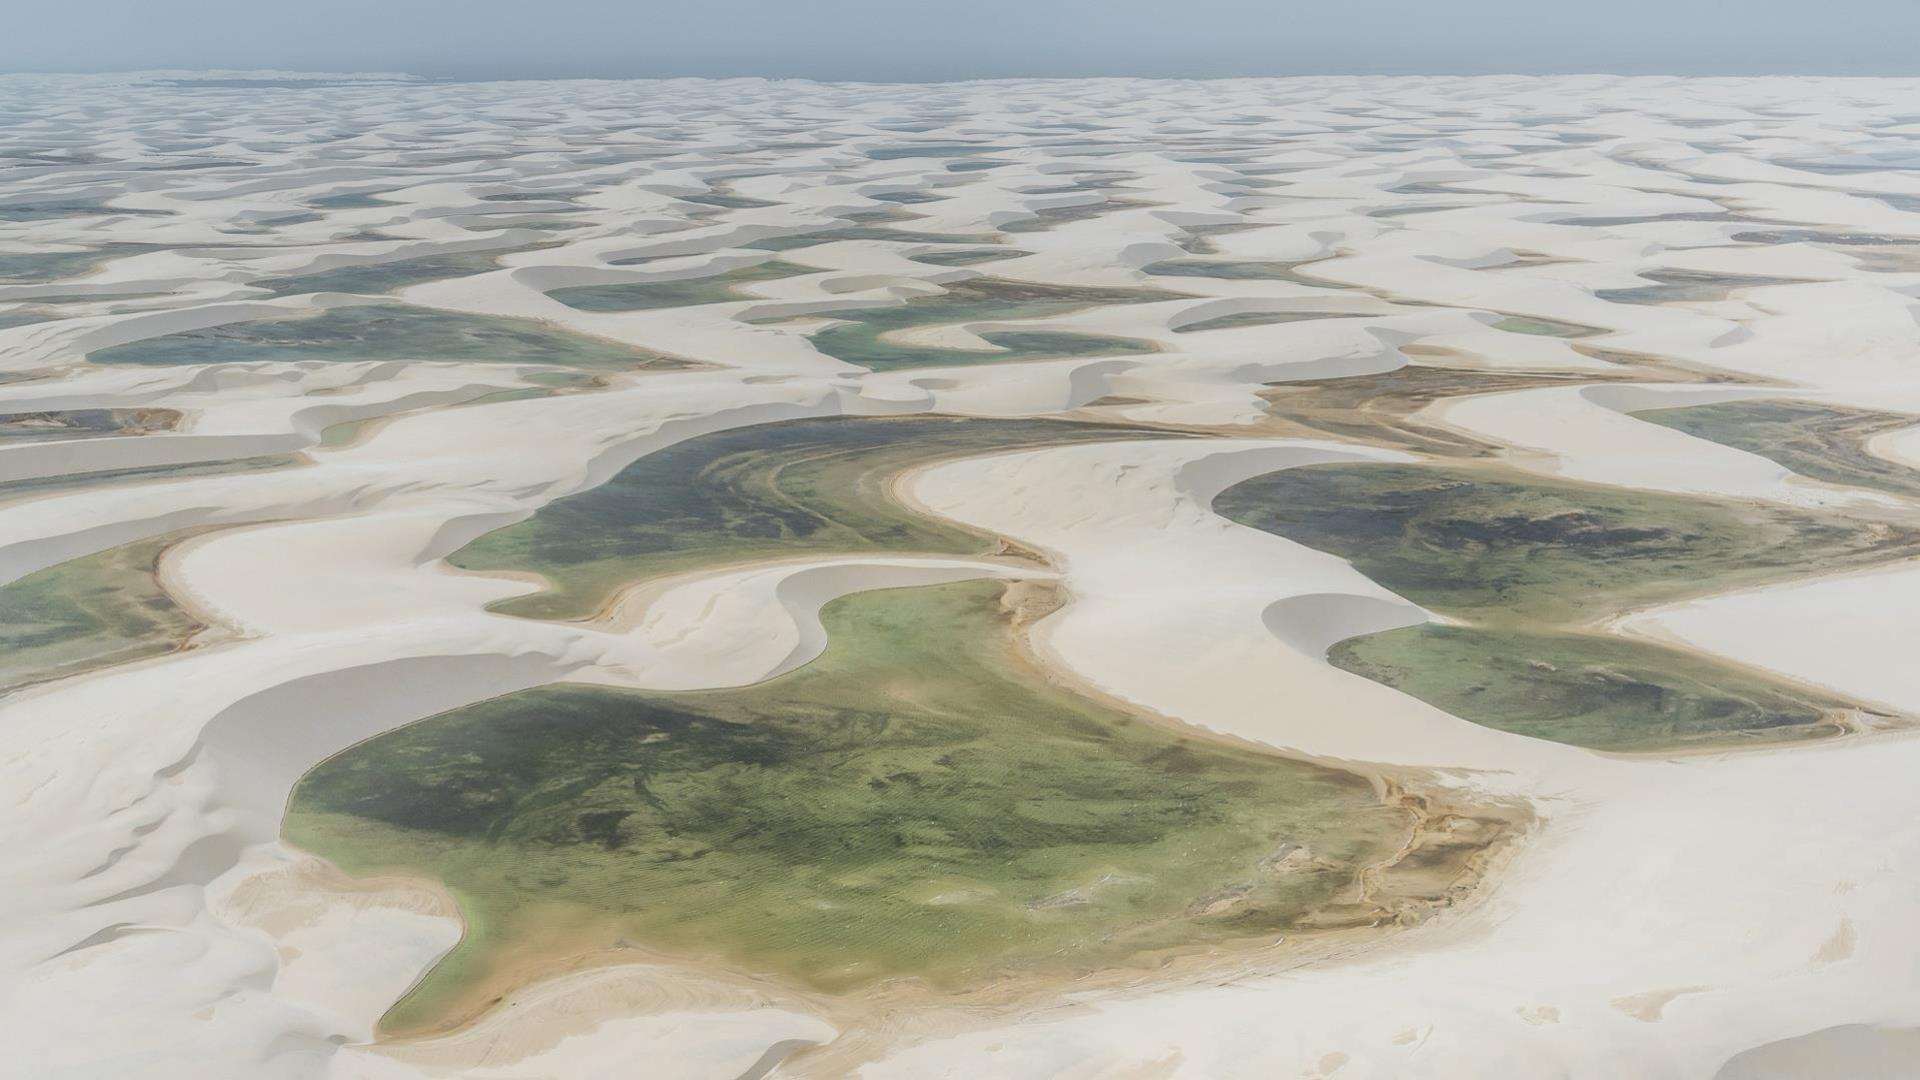 From Sao Luis to Jericoacoara on the Rota das Emocoes: Green oases of the Lencois Maranhenses